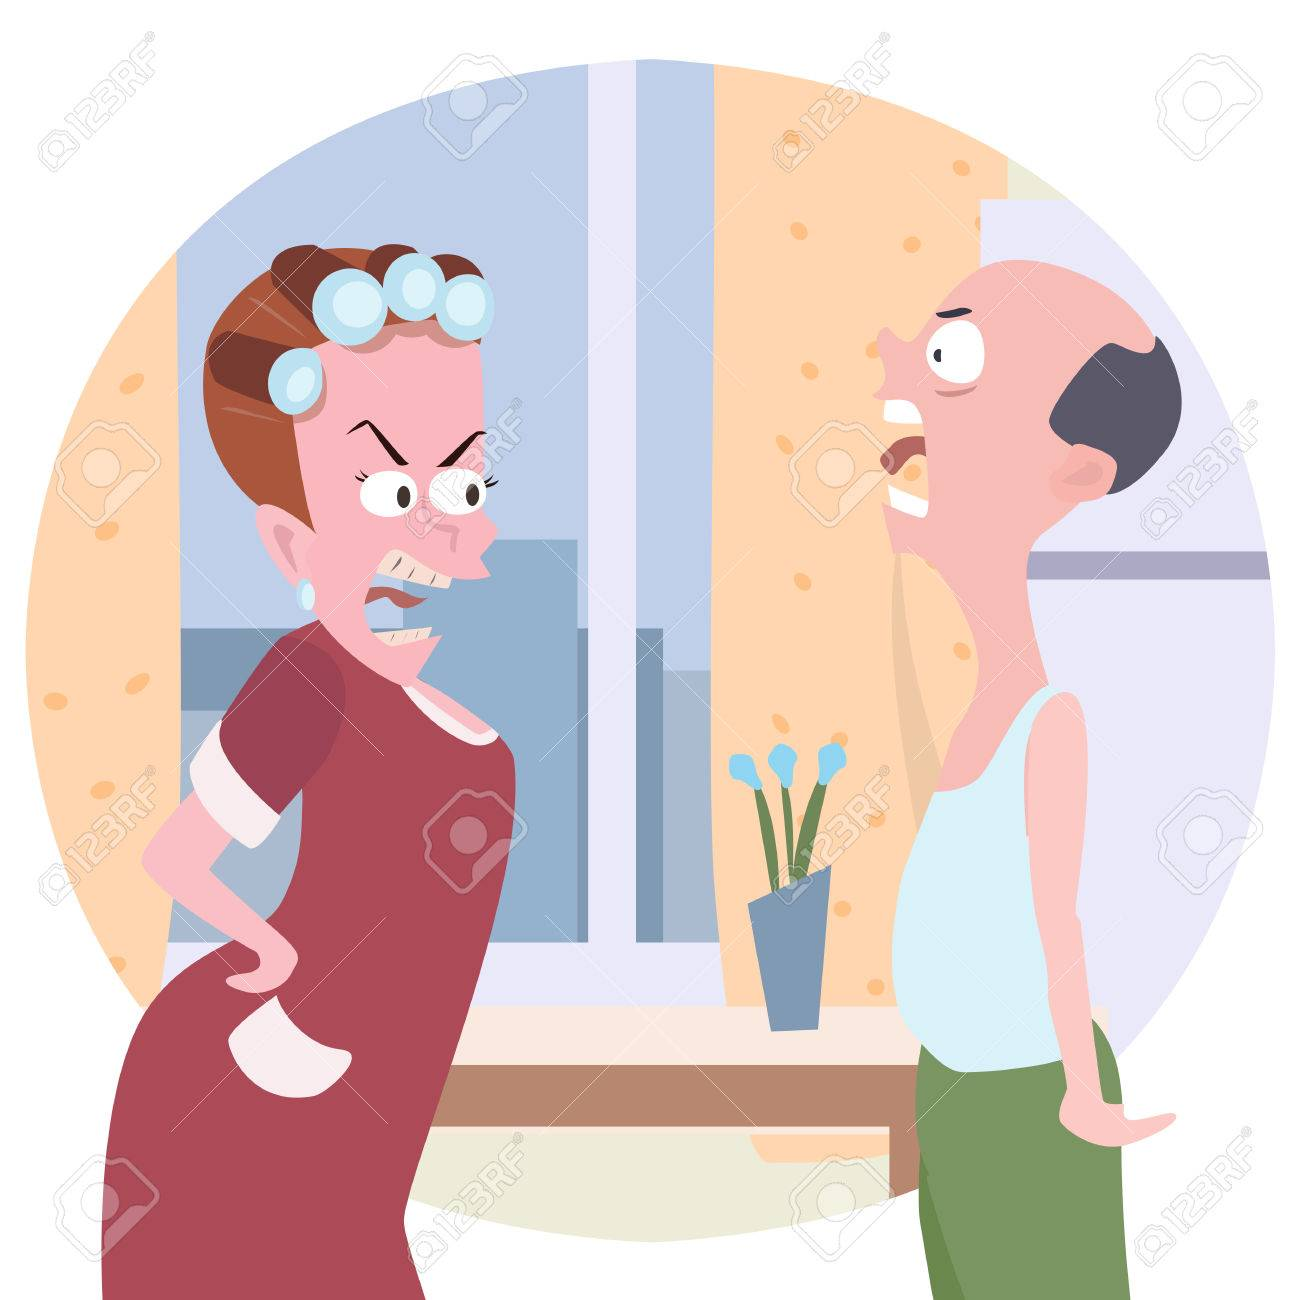 Family Conflict Cartoon Comic Illustration Of Wife And Husband Royalty Free Cliparts Vectors And Stock Illustration Image 53144316